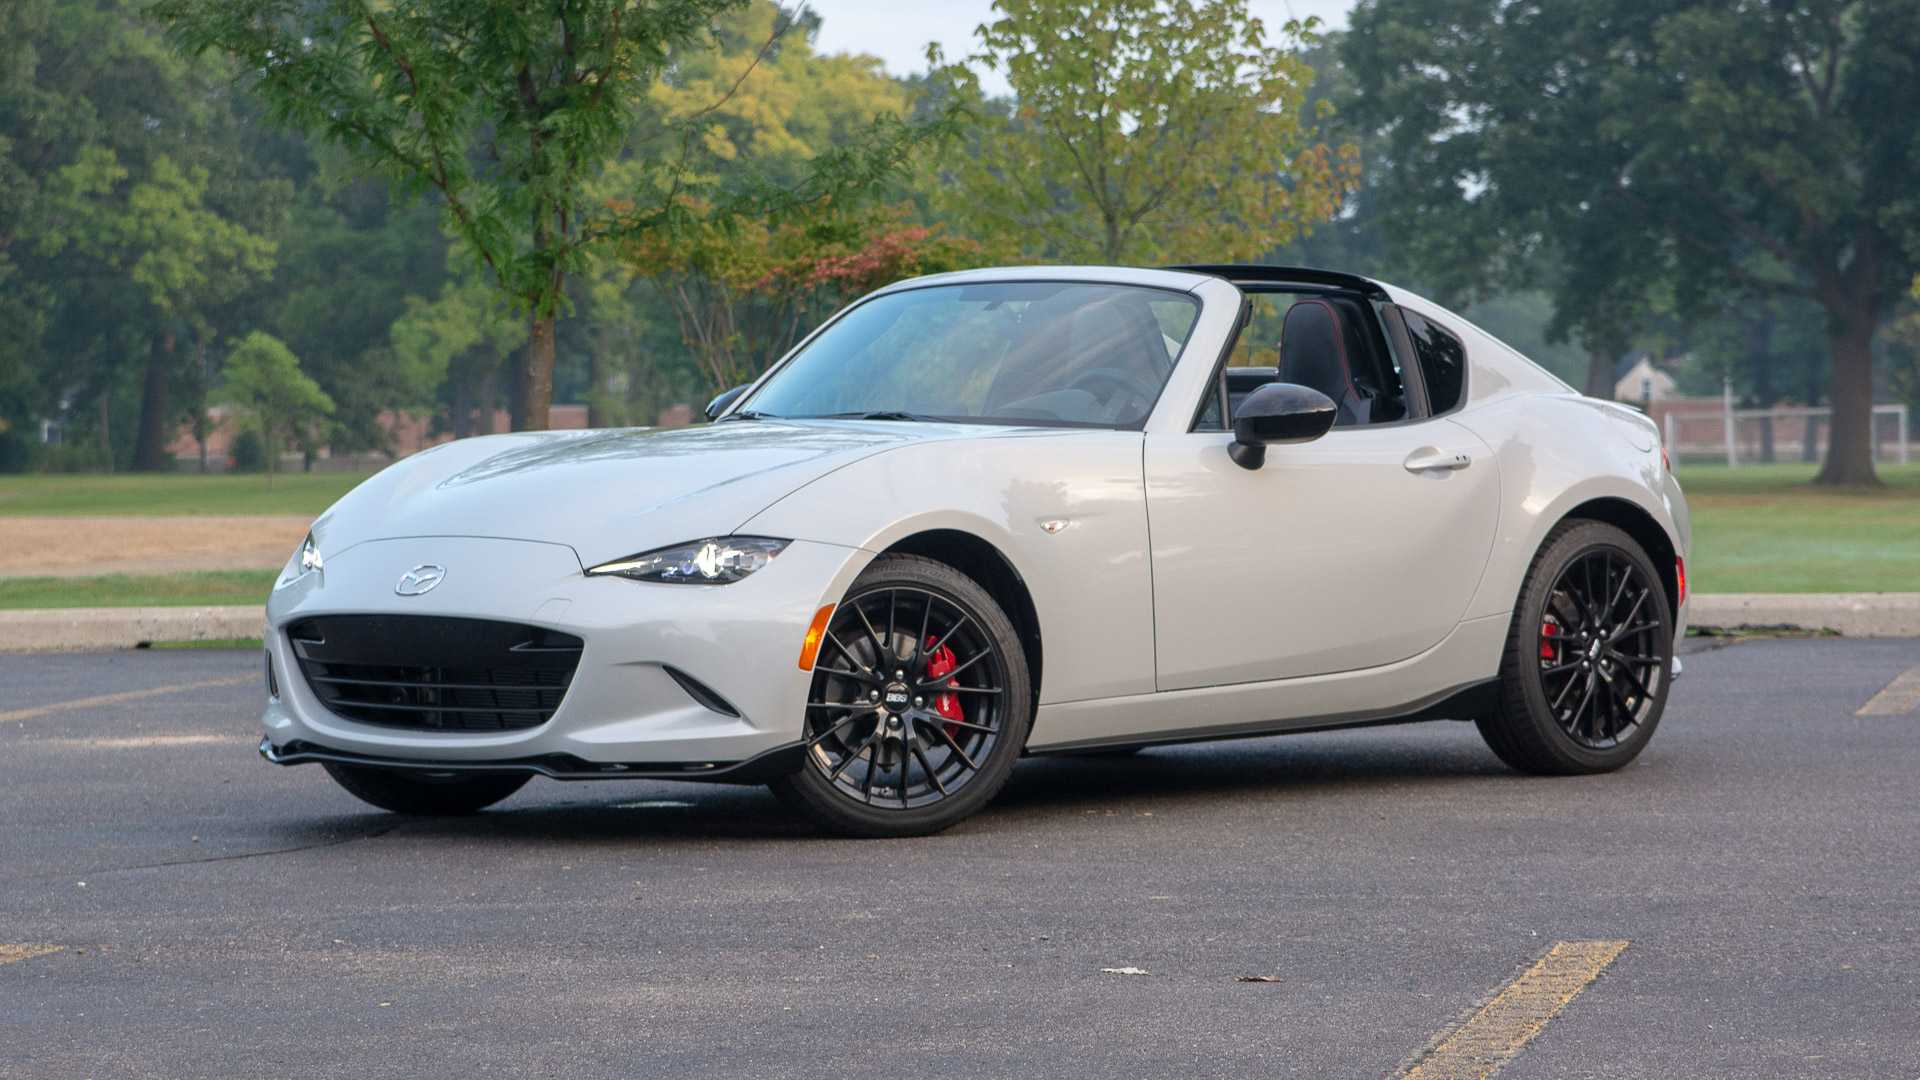 87 All New 2019 Mazda Miata Concept